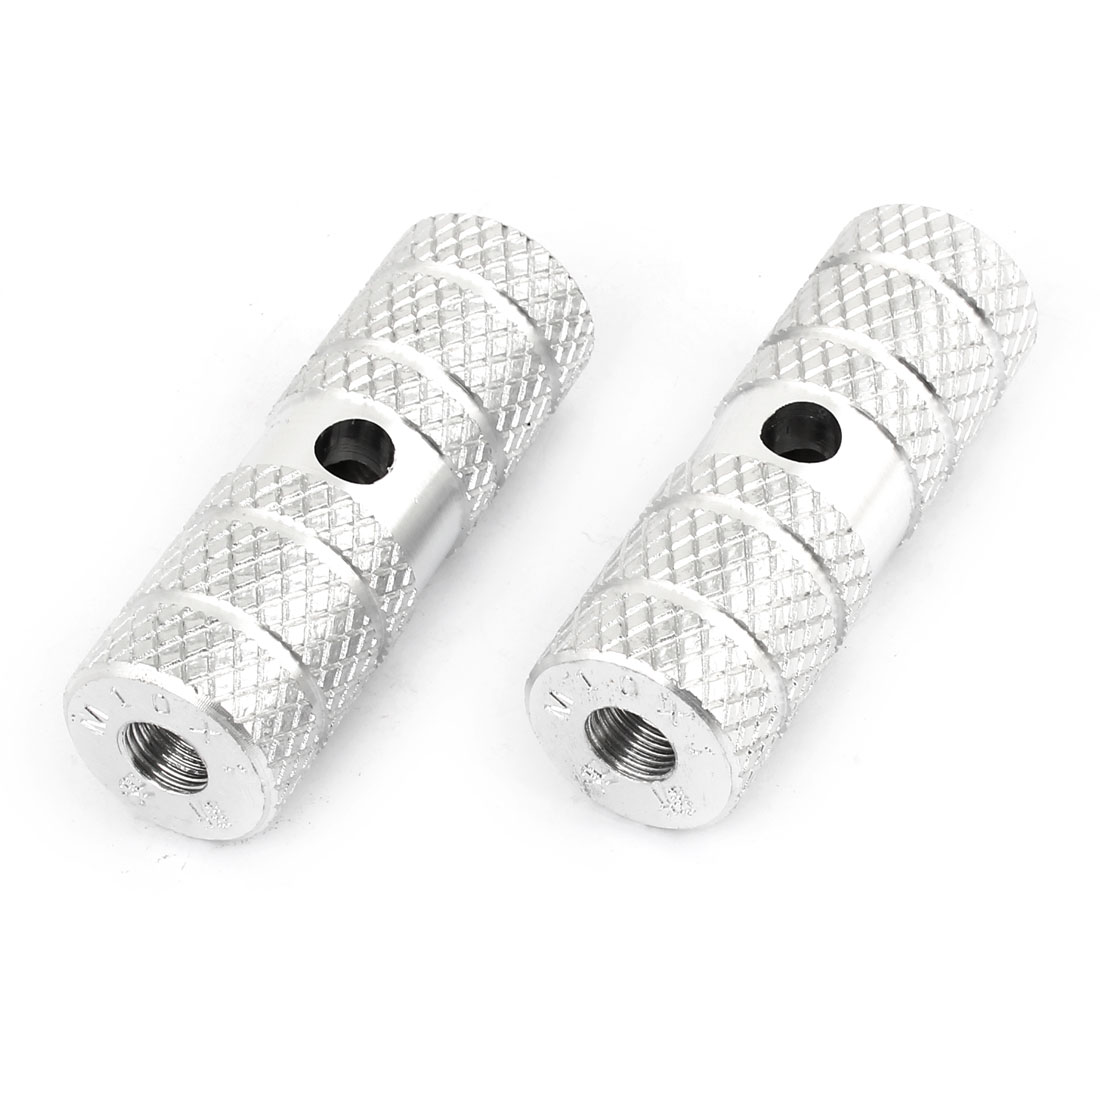 2 Pcs 22mm Dia Silver Tone Antislip Groove Design Bicycle Bike Axle Foot Pegs